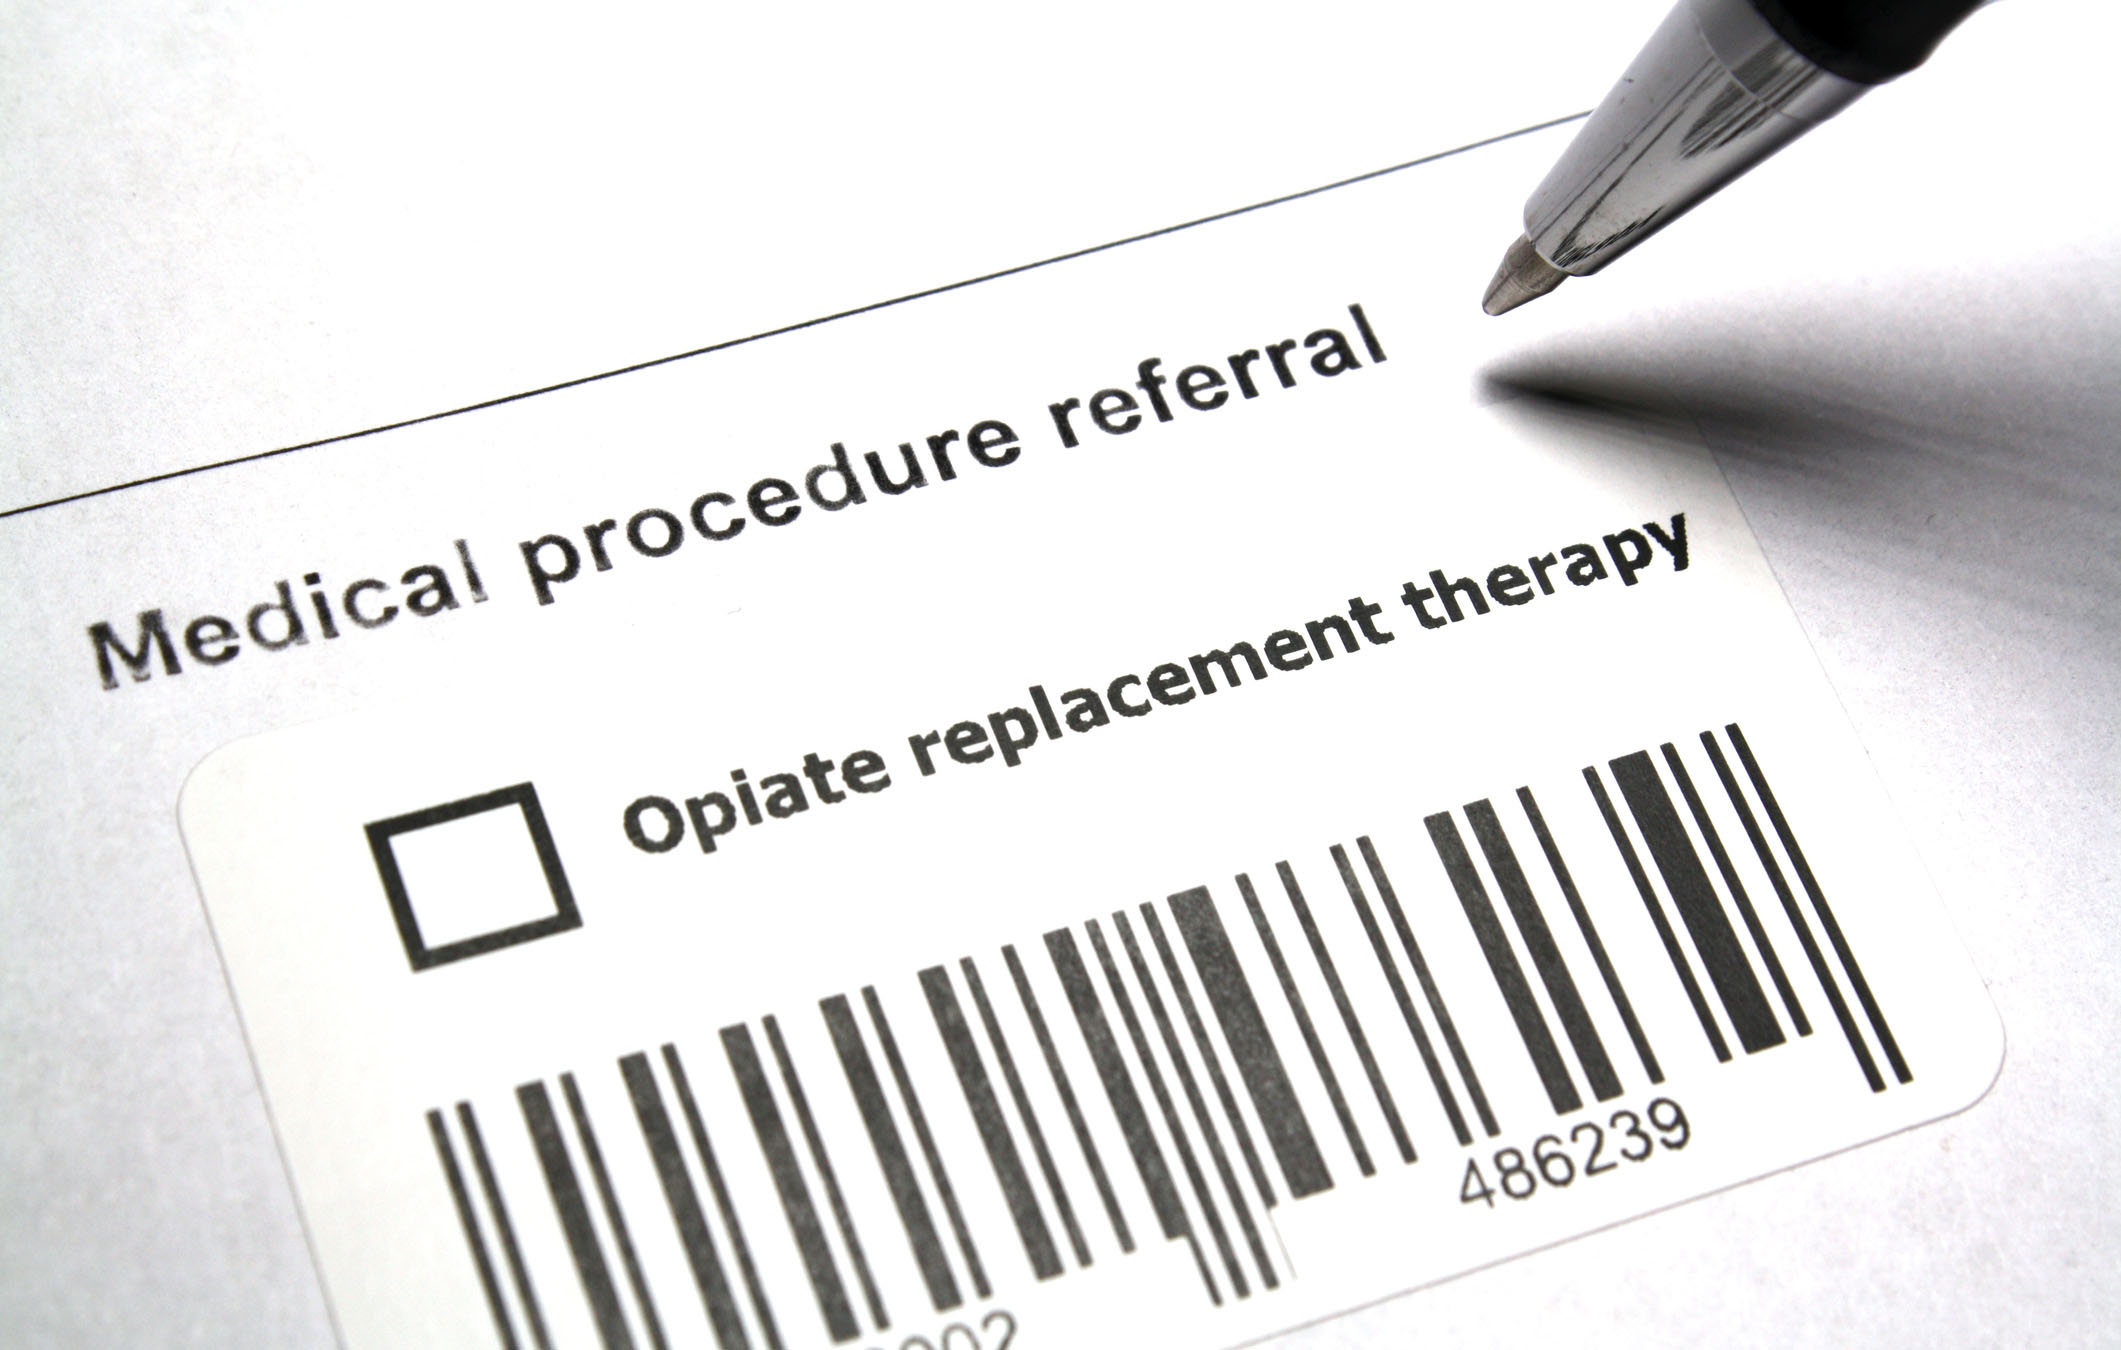 referral for opiate replacement therapy